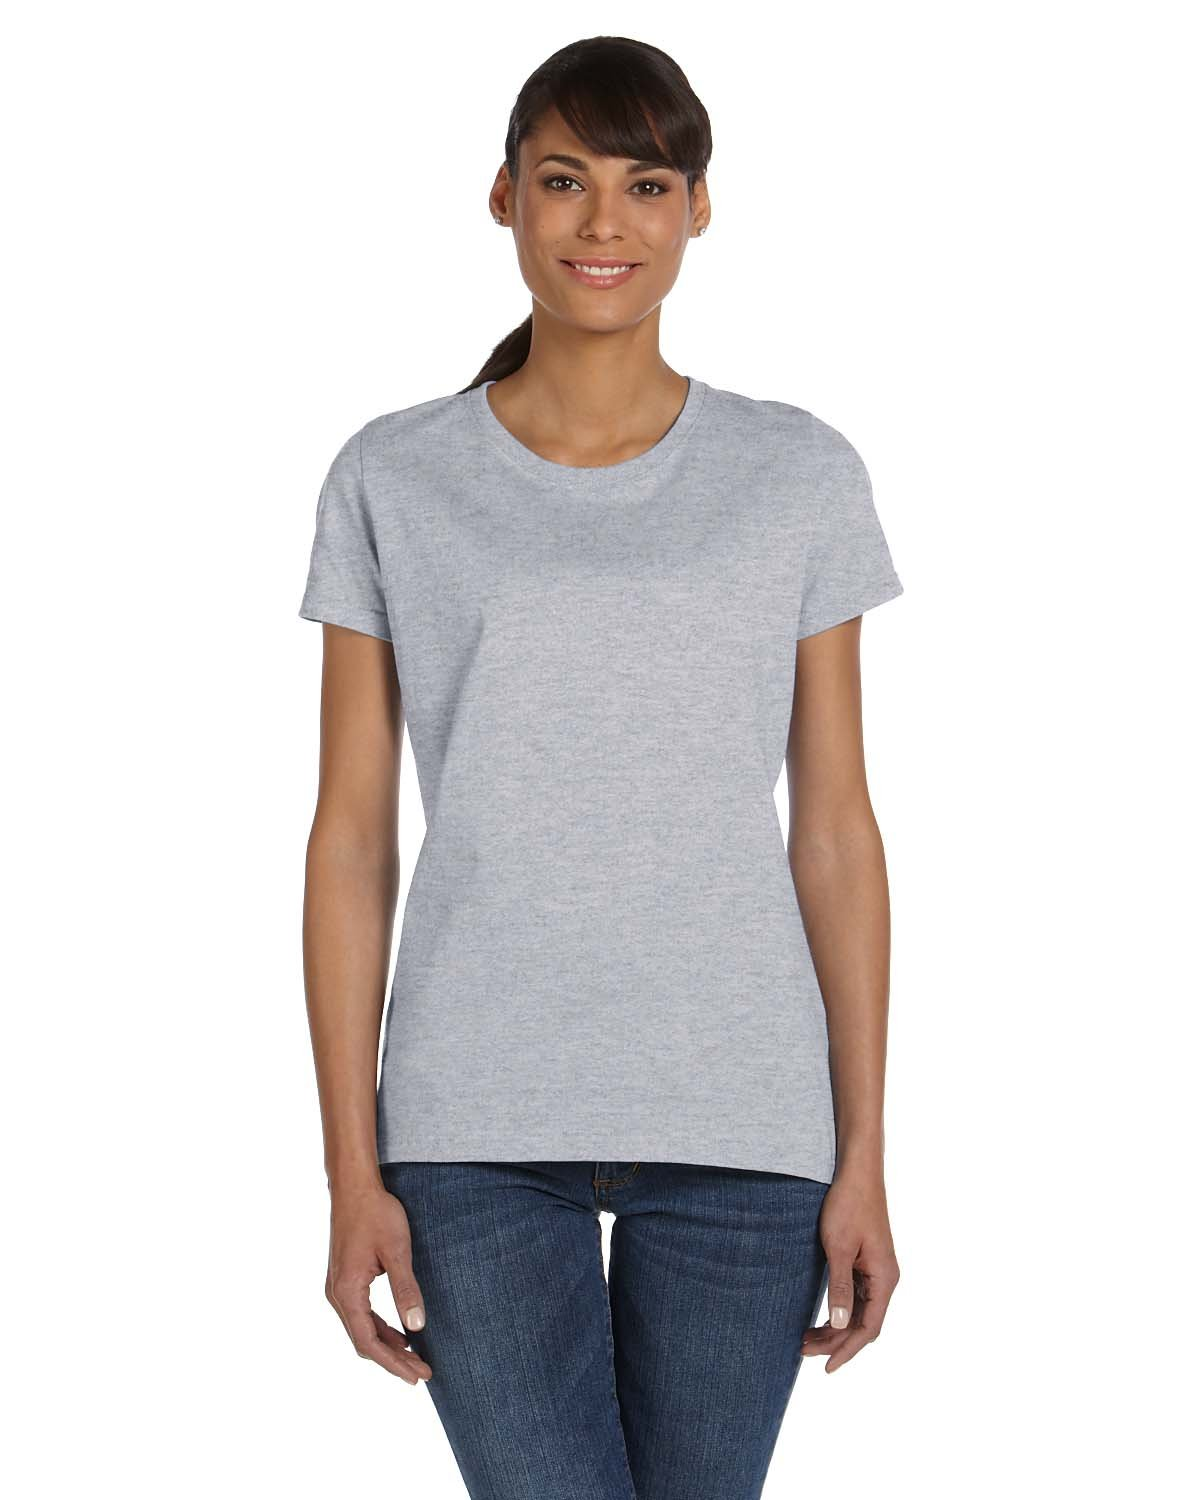 Fruit of the Loom Ladies' HD Cotton™ T-Shirt ATHLETIC HEATHER